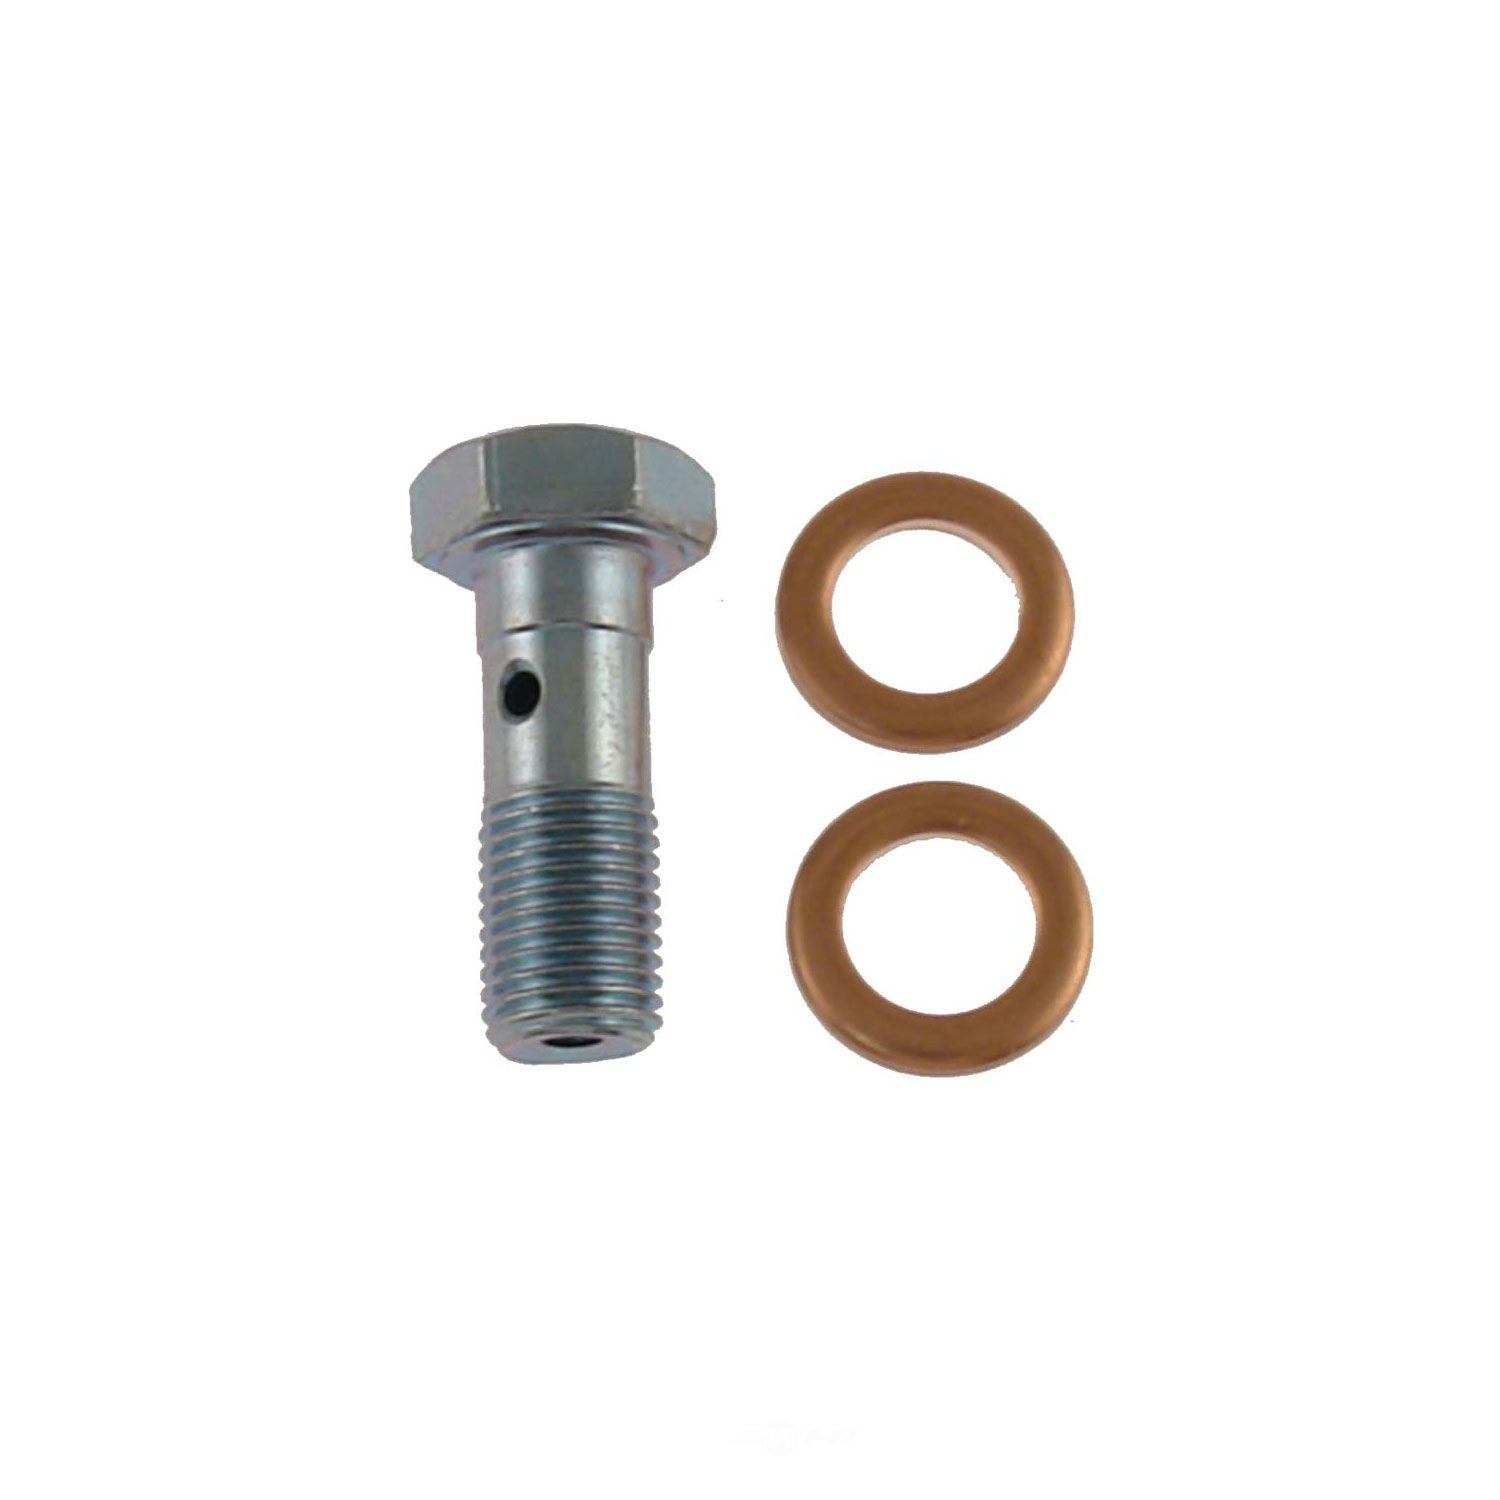 CARLSON QUALITY BRAKE PARTS - Brake Hydraulic Banjo Bolt (Front) - CRL H9472-2